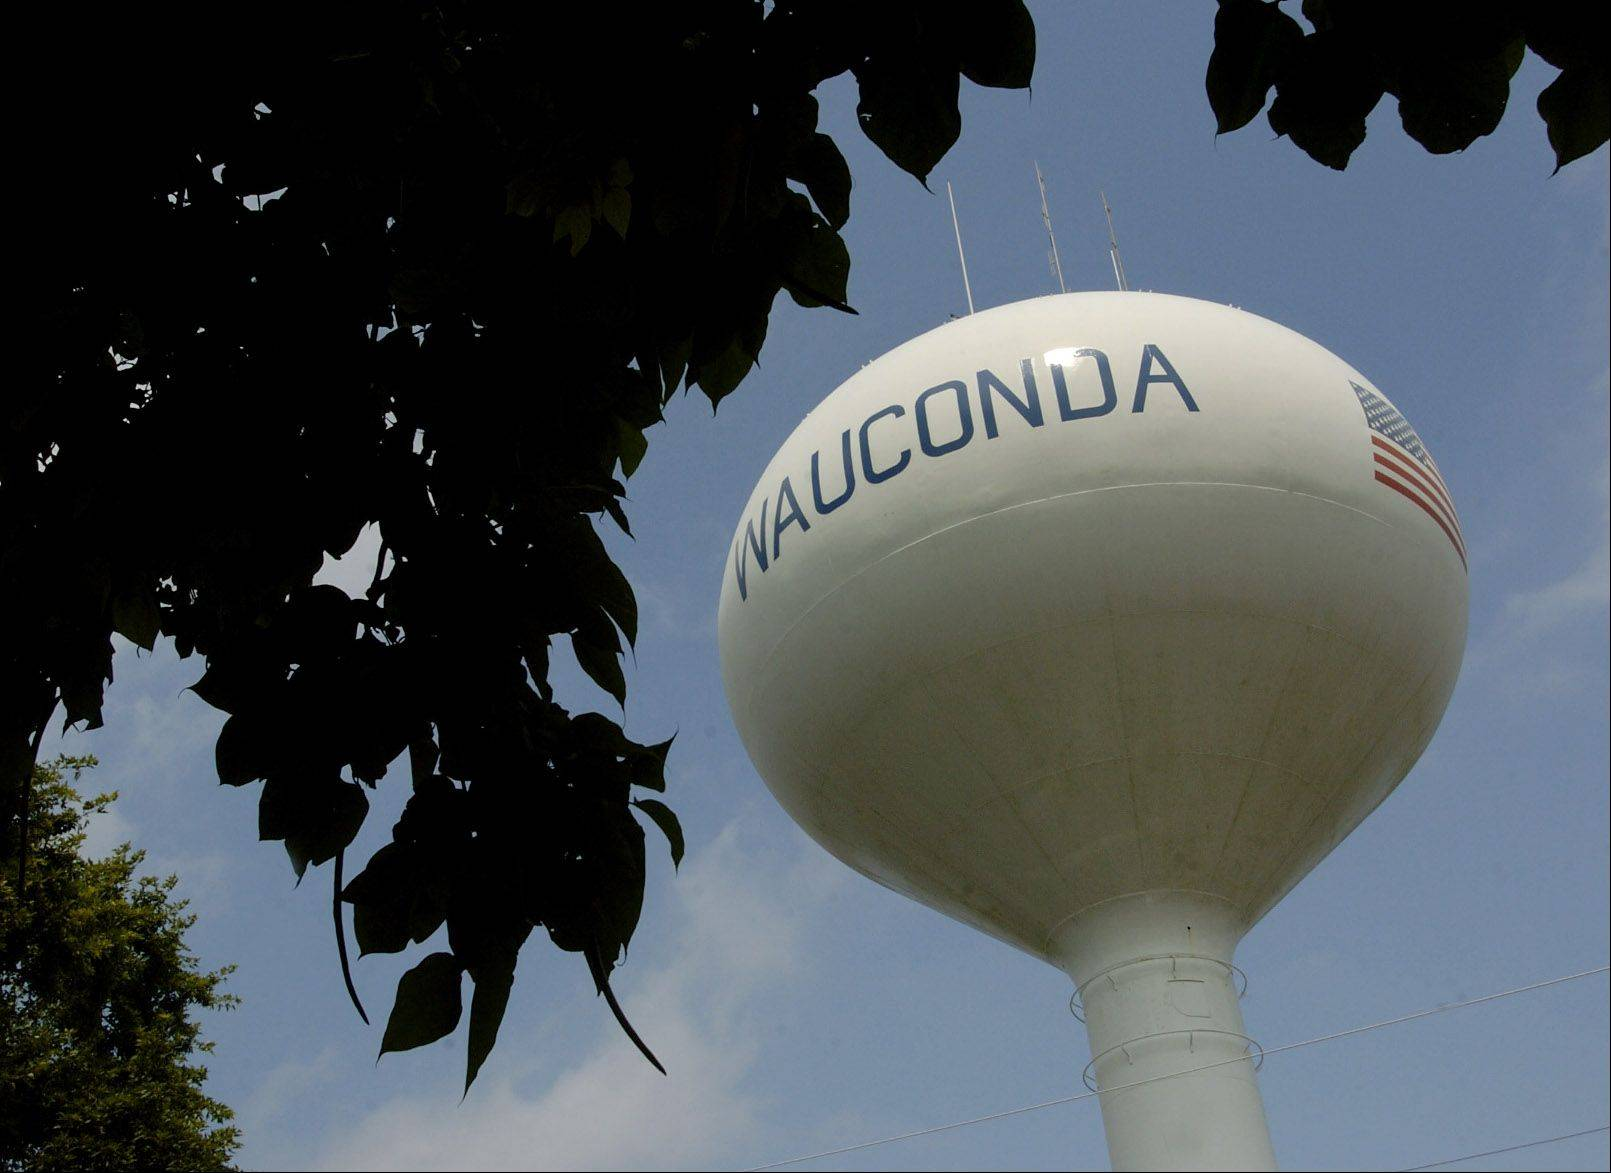 A regional water agency denied Wauconda membership in their group on Tuesday.